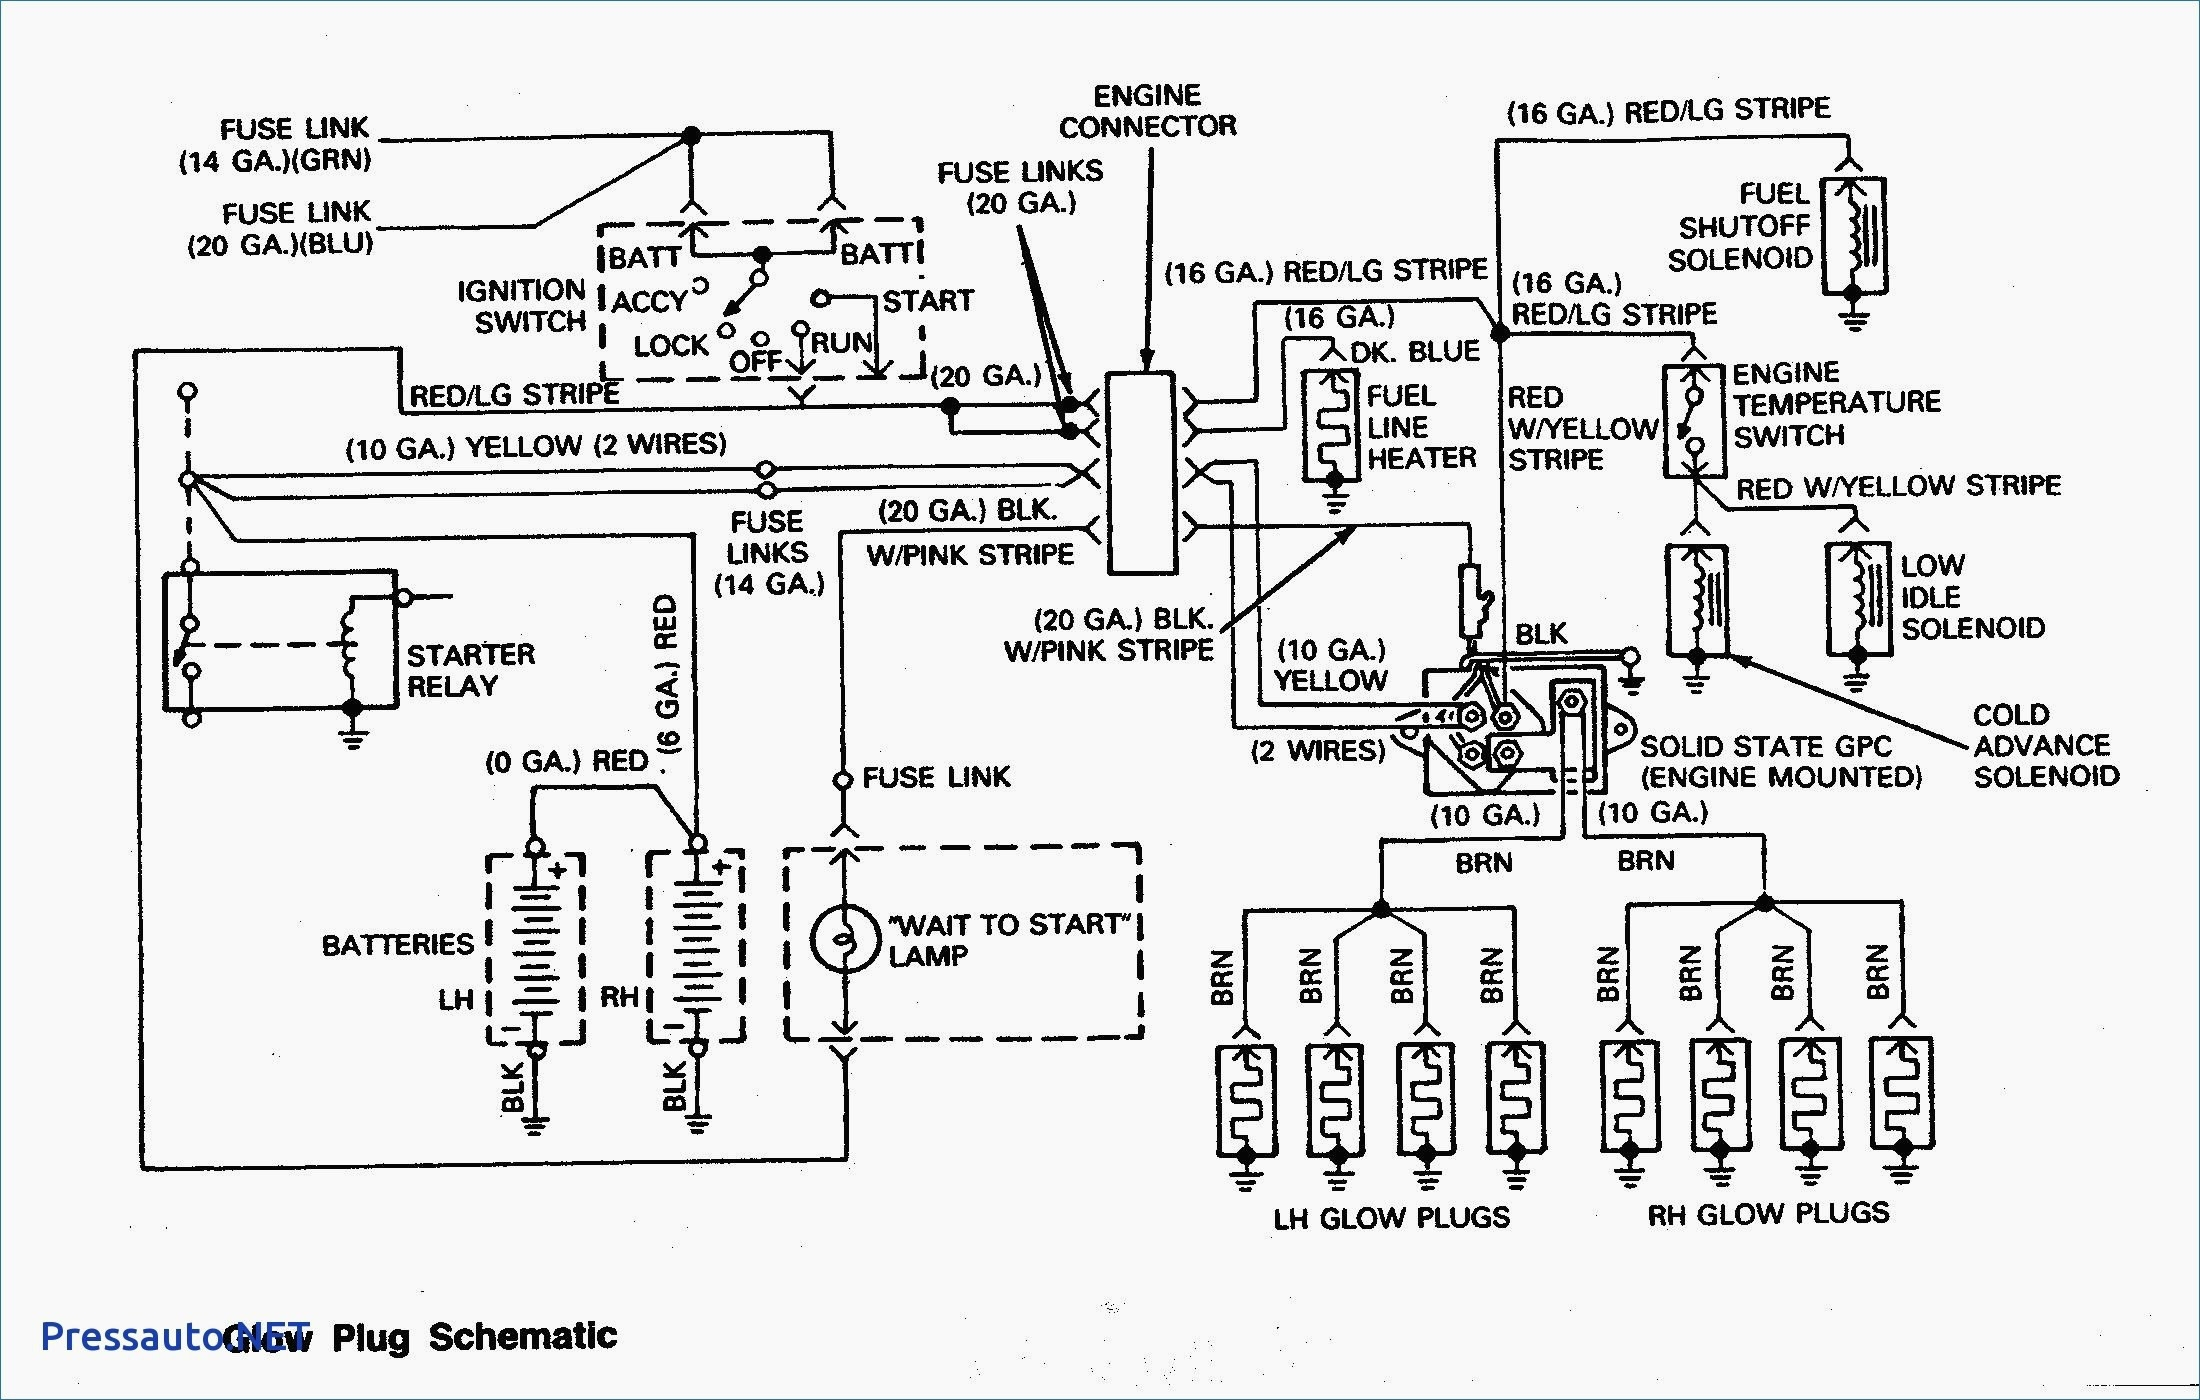 7.3 powerstroke glow plug relay wiring diagram Download-Wiring Diagram Glow Plug Relay 7 3 Valid 7 3 Glow Plug Wiring Wiring Diagram Library • 1-n